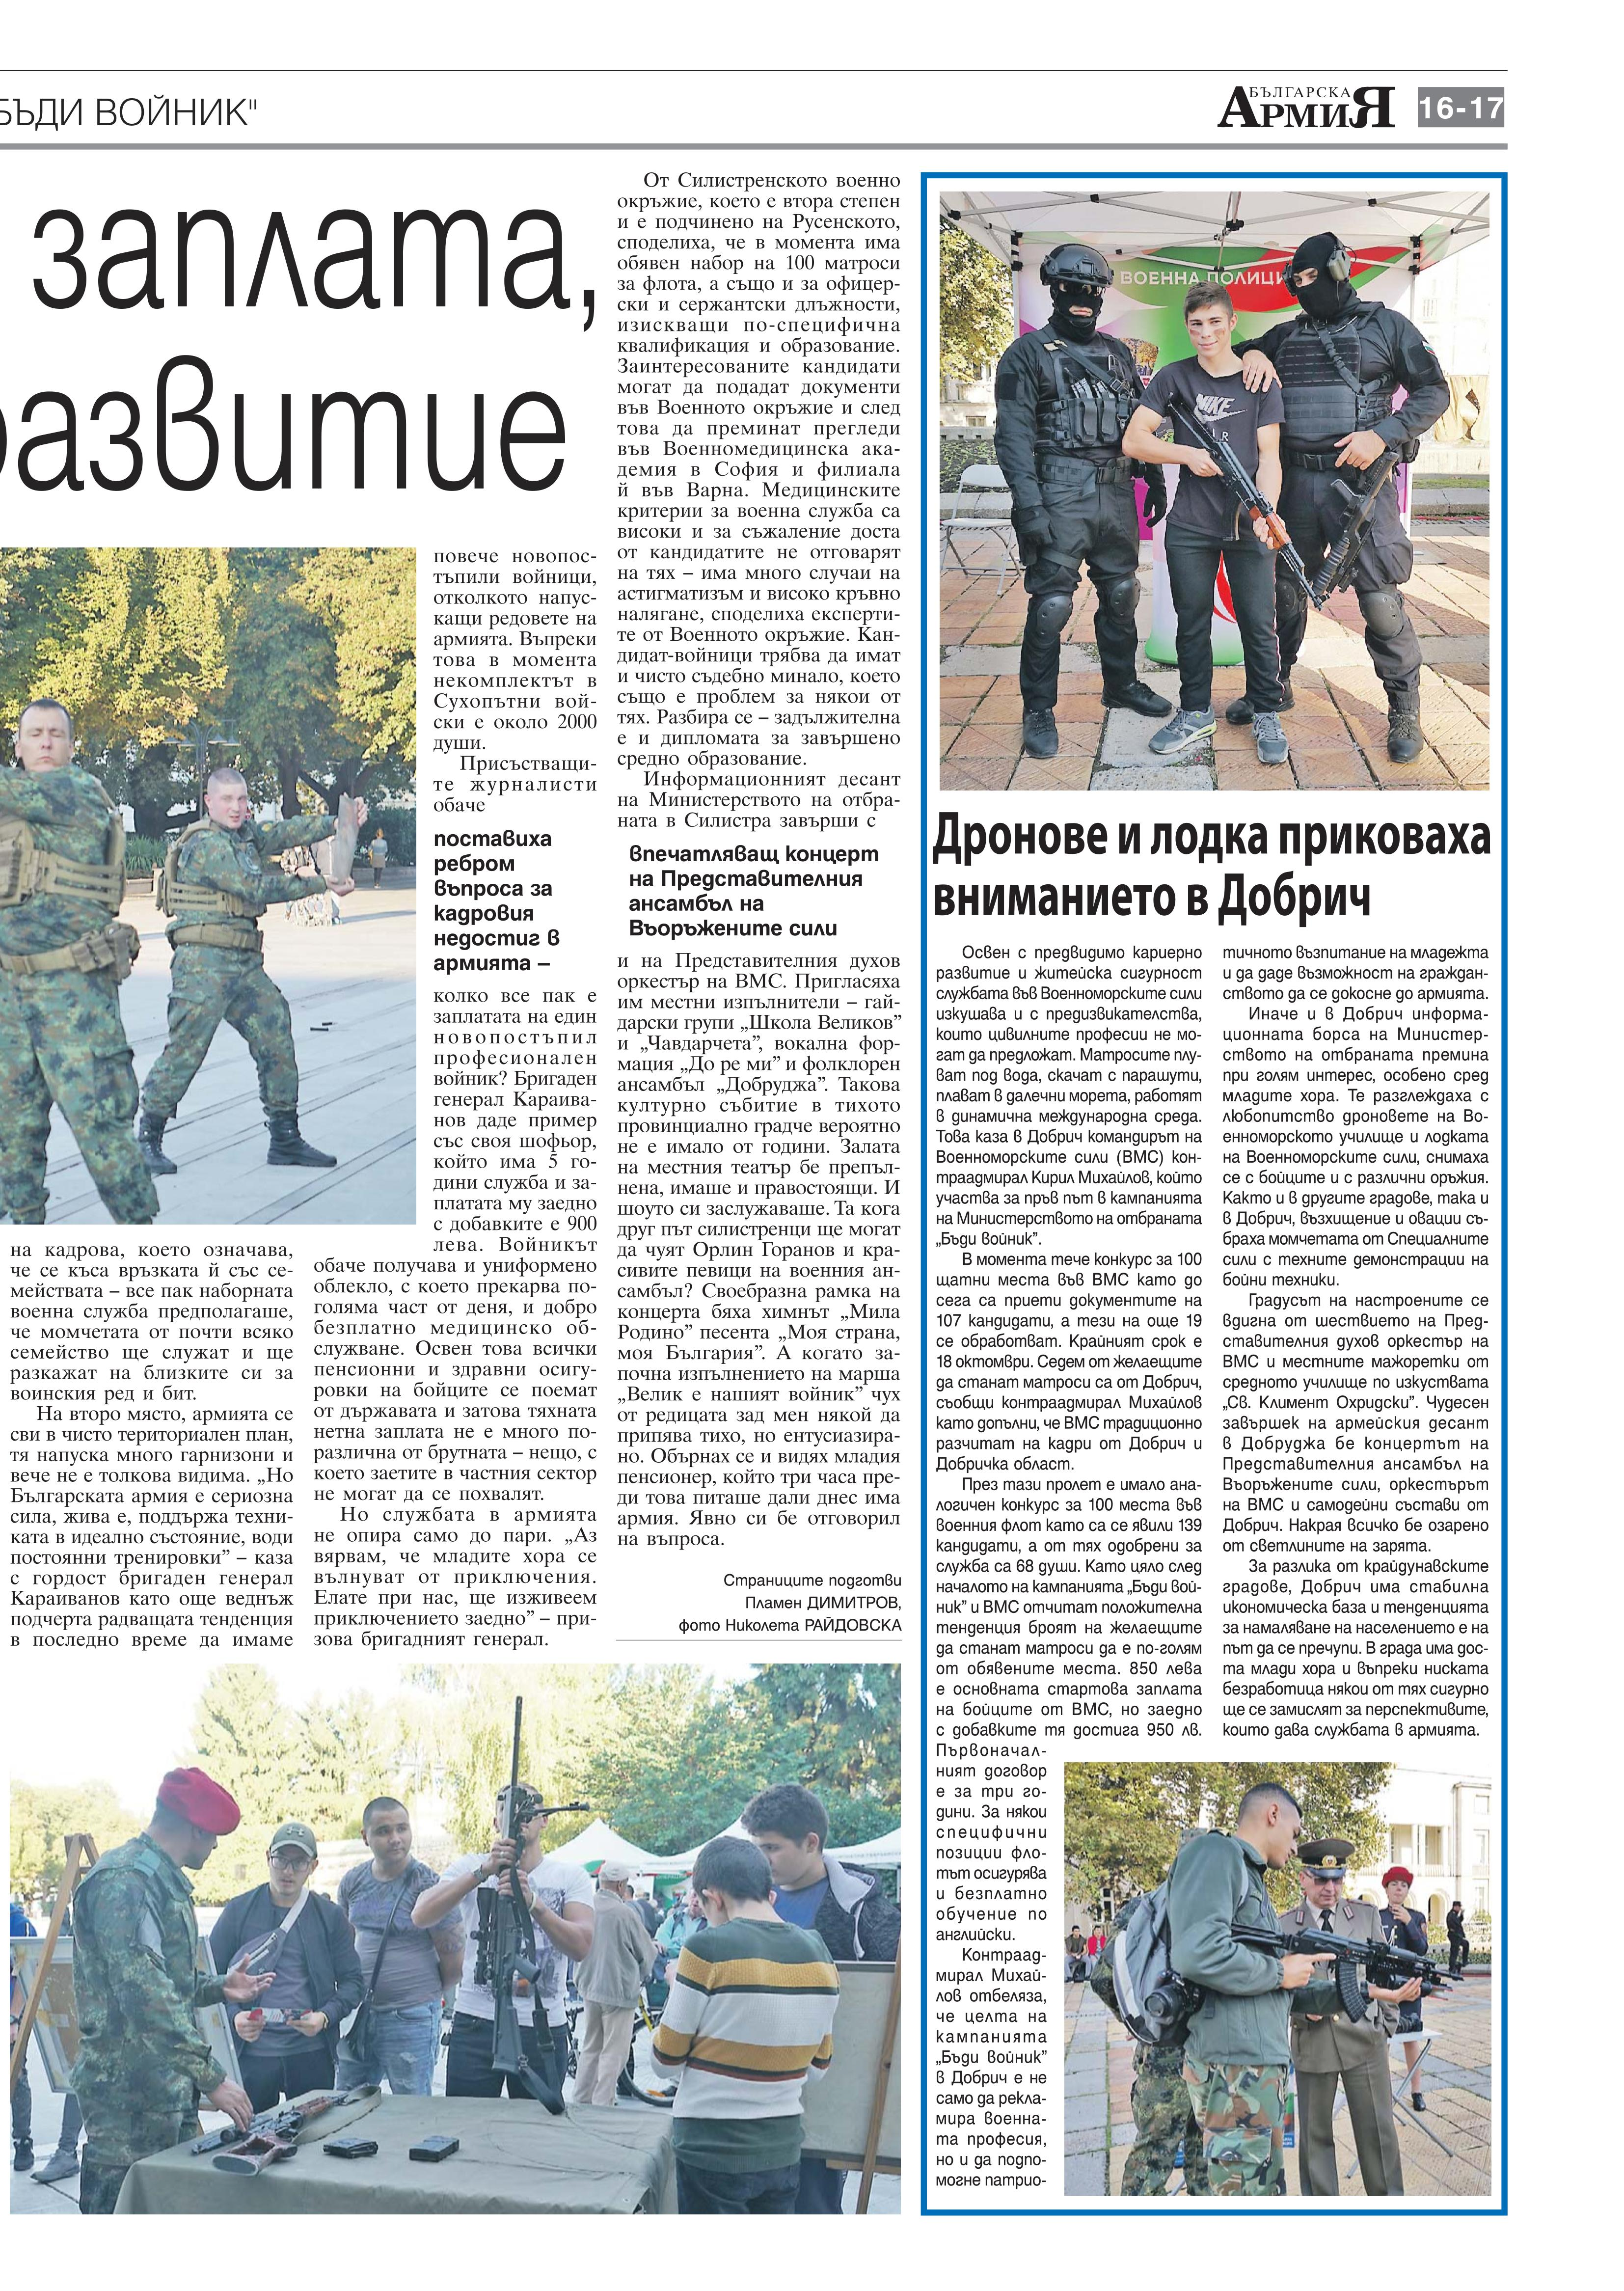 https://armymedia.bg/wp-content/uploads/2015/06/17.page1_-111.jpg